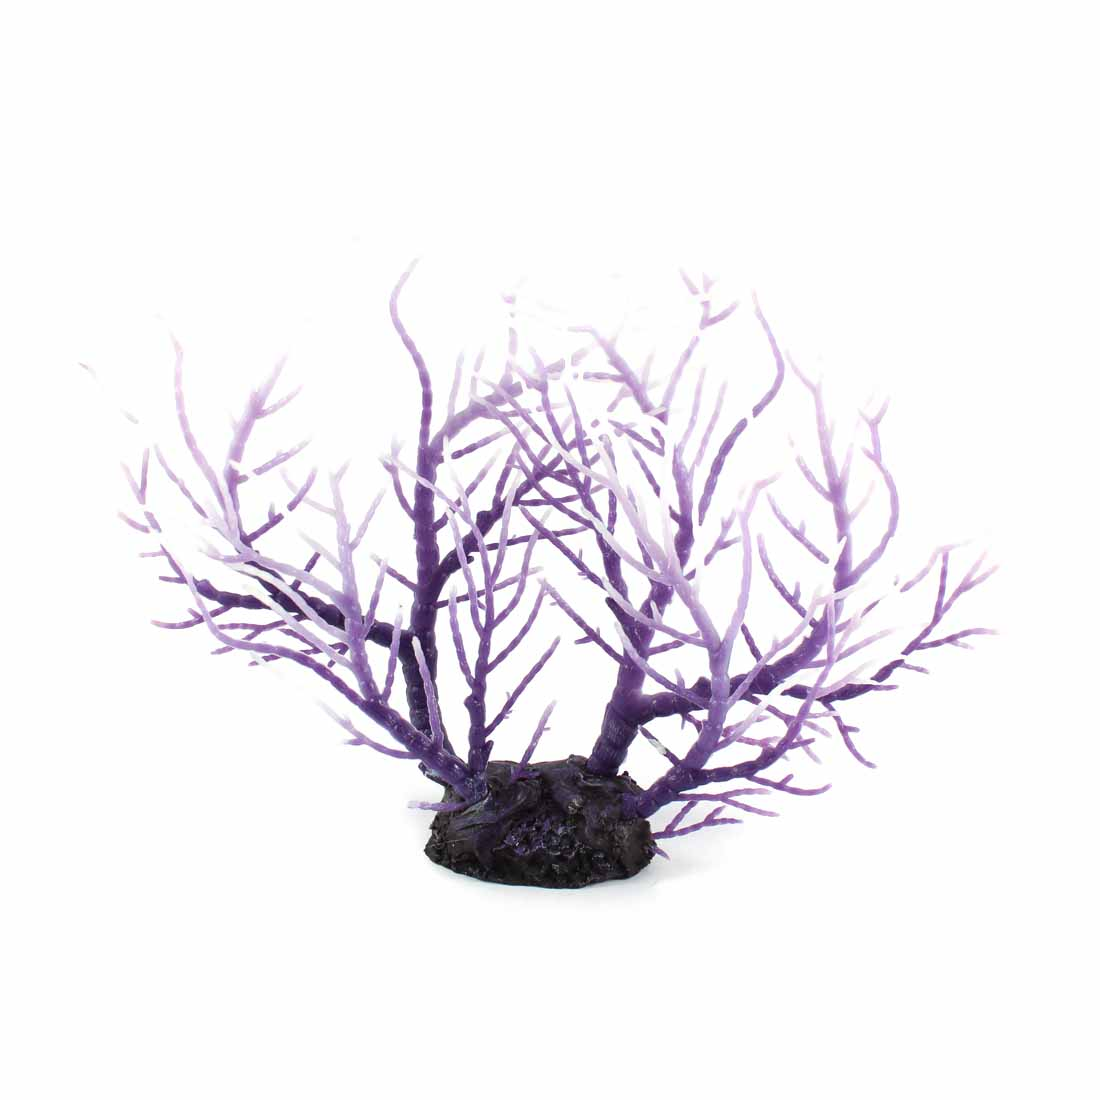 Fishbowl Aquarium Purple Plastic Artificial Underwater Plant Coral Sea Anemone Ornament 20.5cm Height